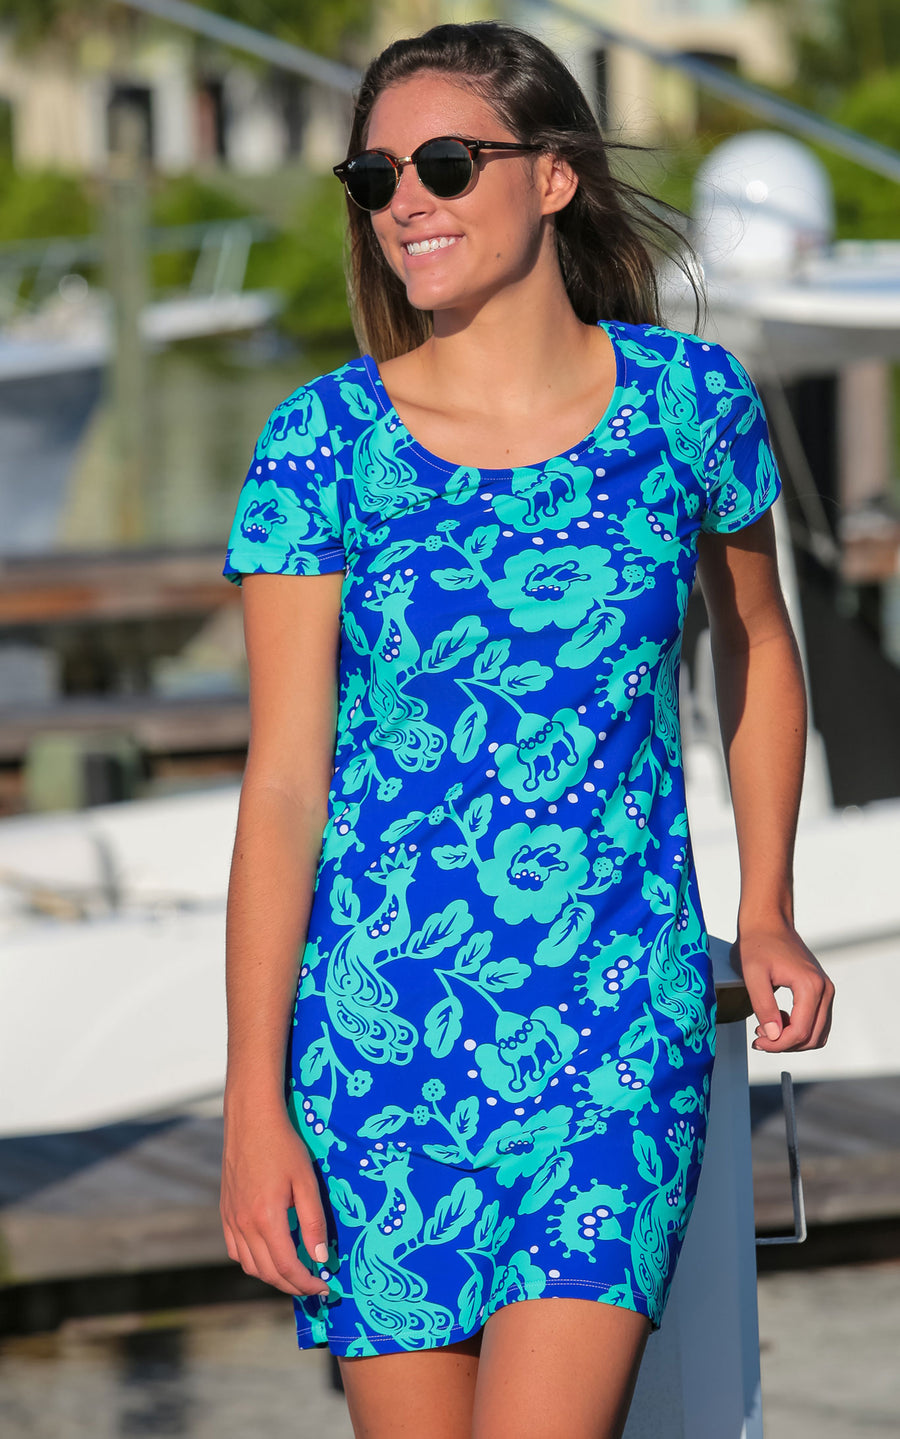 All For Color-Birds of a Feather Cove Road Short Sleeve Scoop Neck Dress - FINAL SALE-Dresses